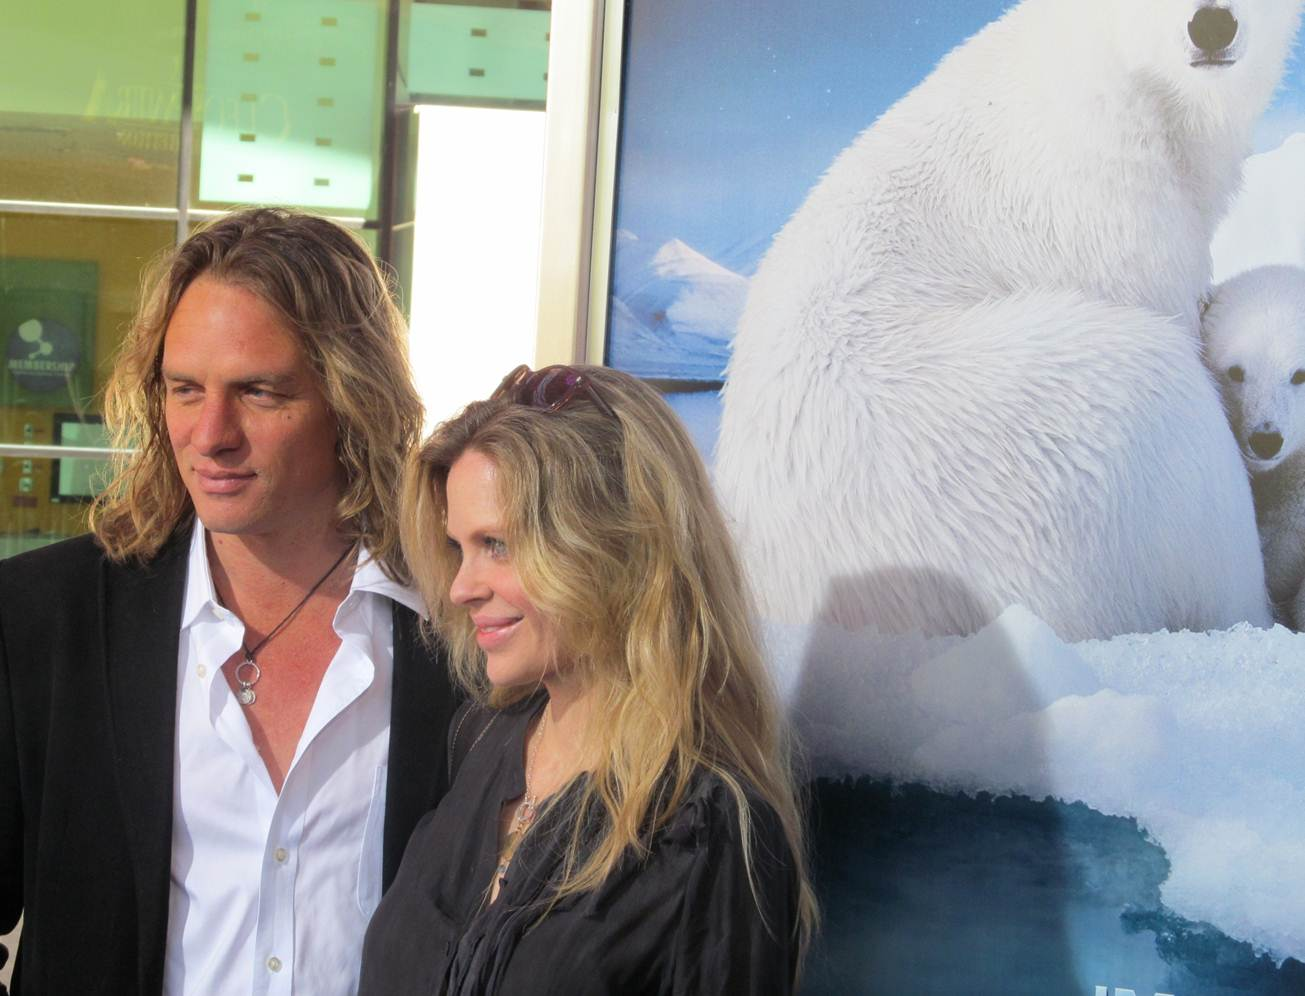 2012 Young Hollywood Life Page 16 Emerson Large Artic Abri Van Straten And Actress Kristin Bauer